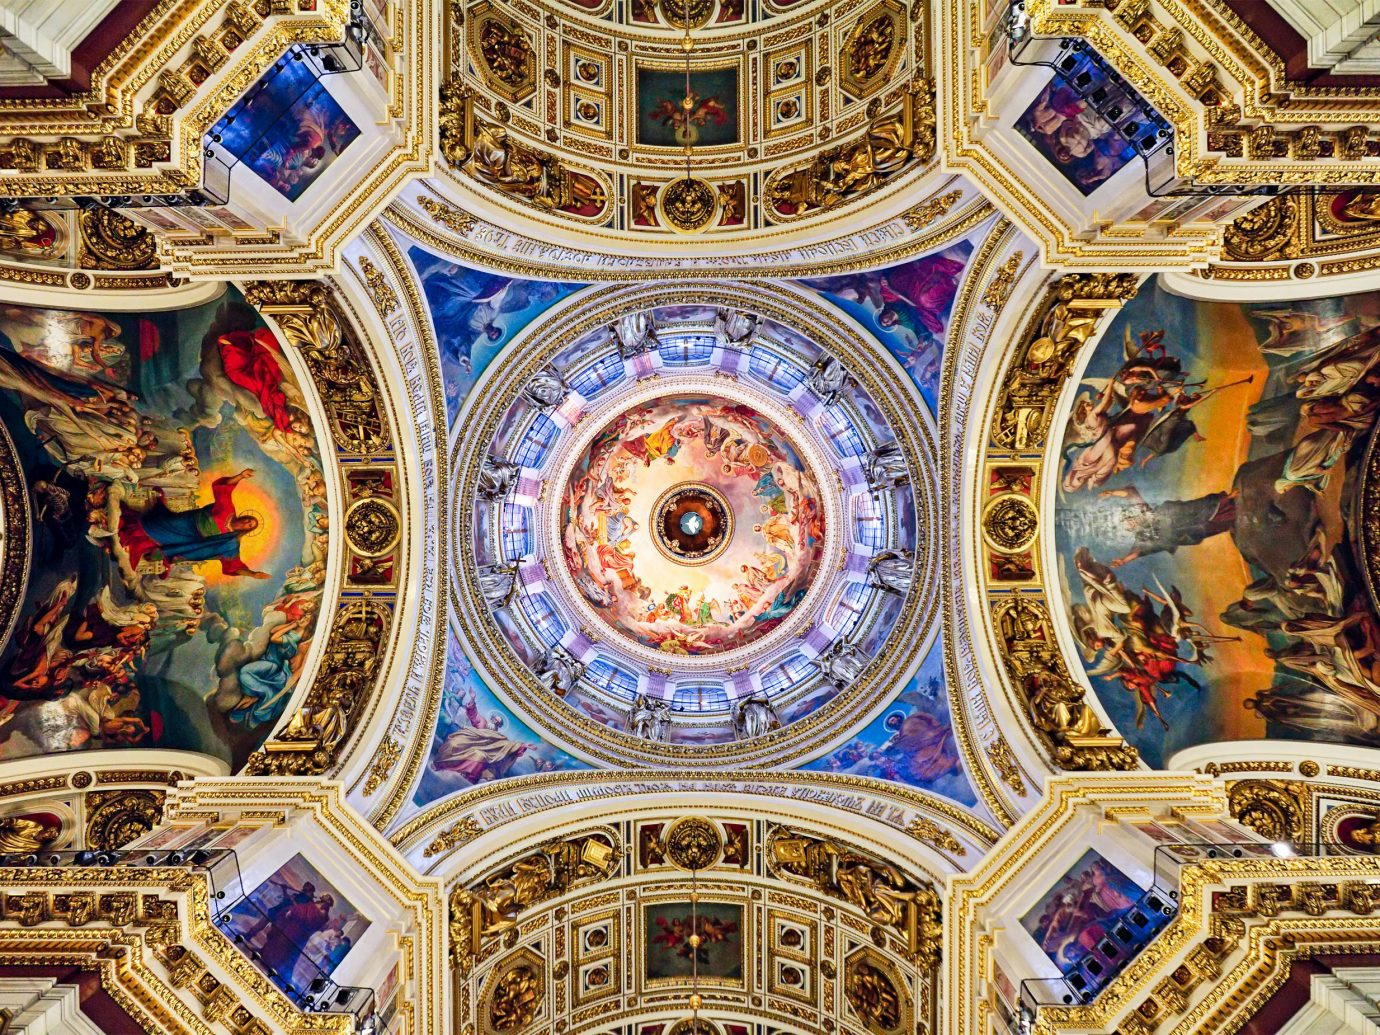 Travel Tips dome landmark building indoor cathedral basilica place of worship byzantine architecture symmetry chapel arch synagogue facade stock photography religion Church ceiling pattern decorated altar several